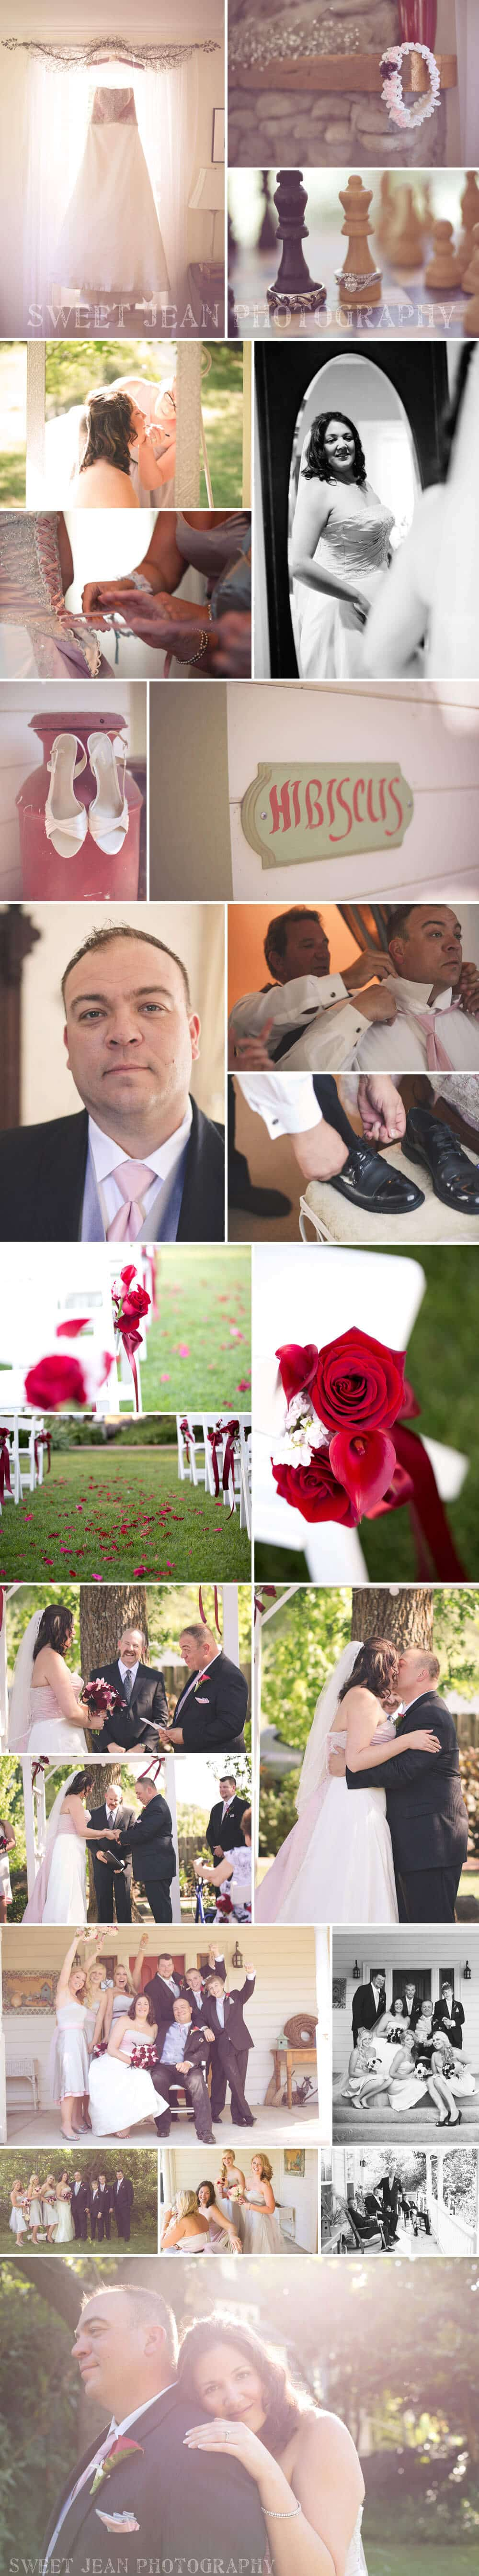 Loomis Wedding Photographer | Nick & Drea